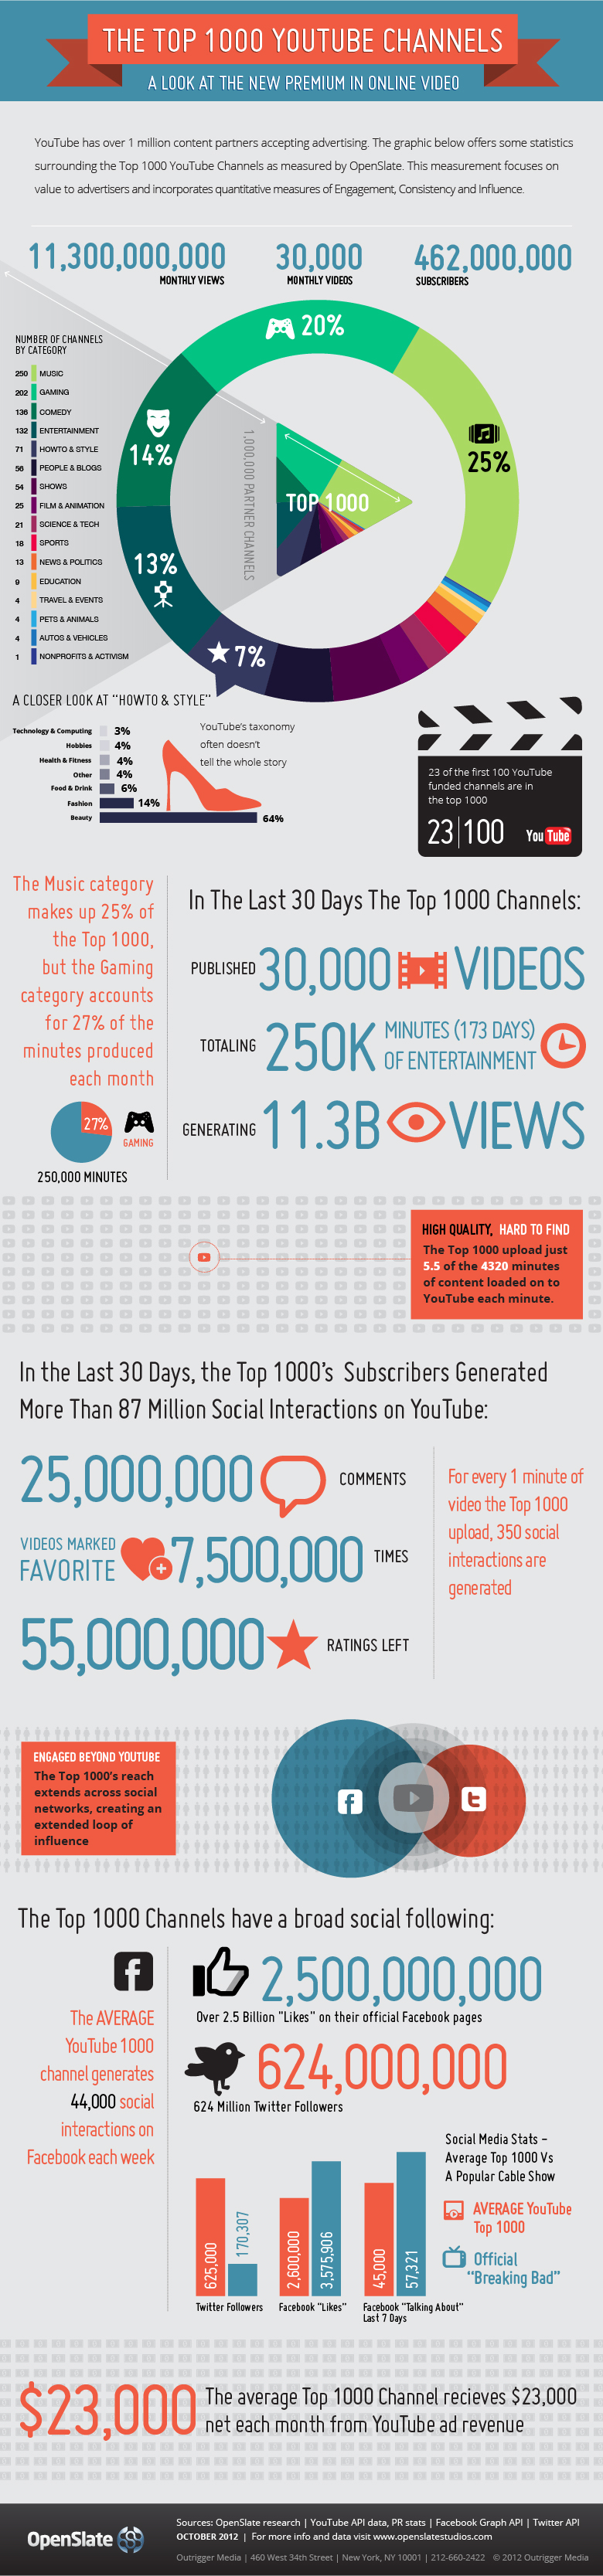 The top 1000 YouTube channels